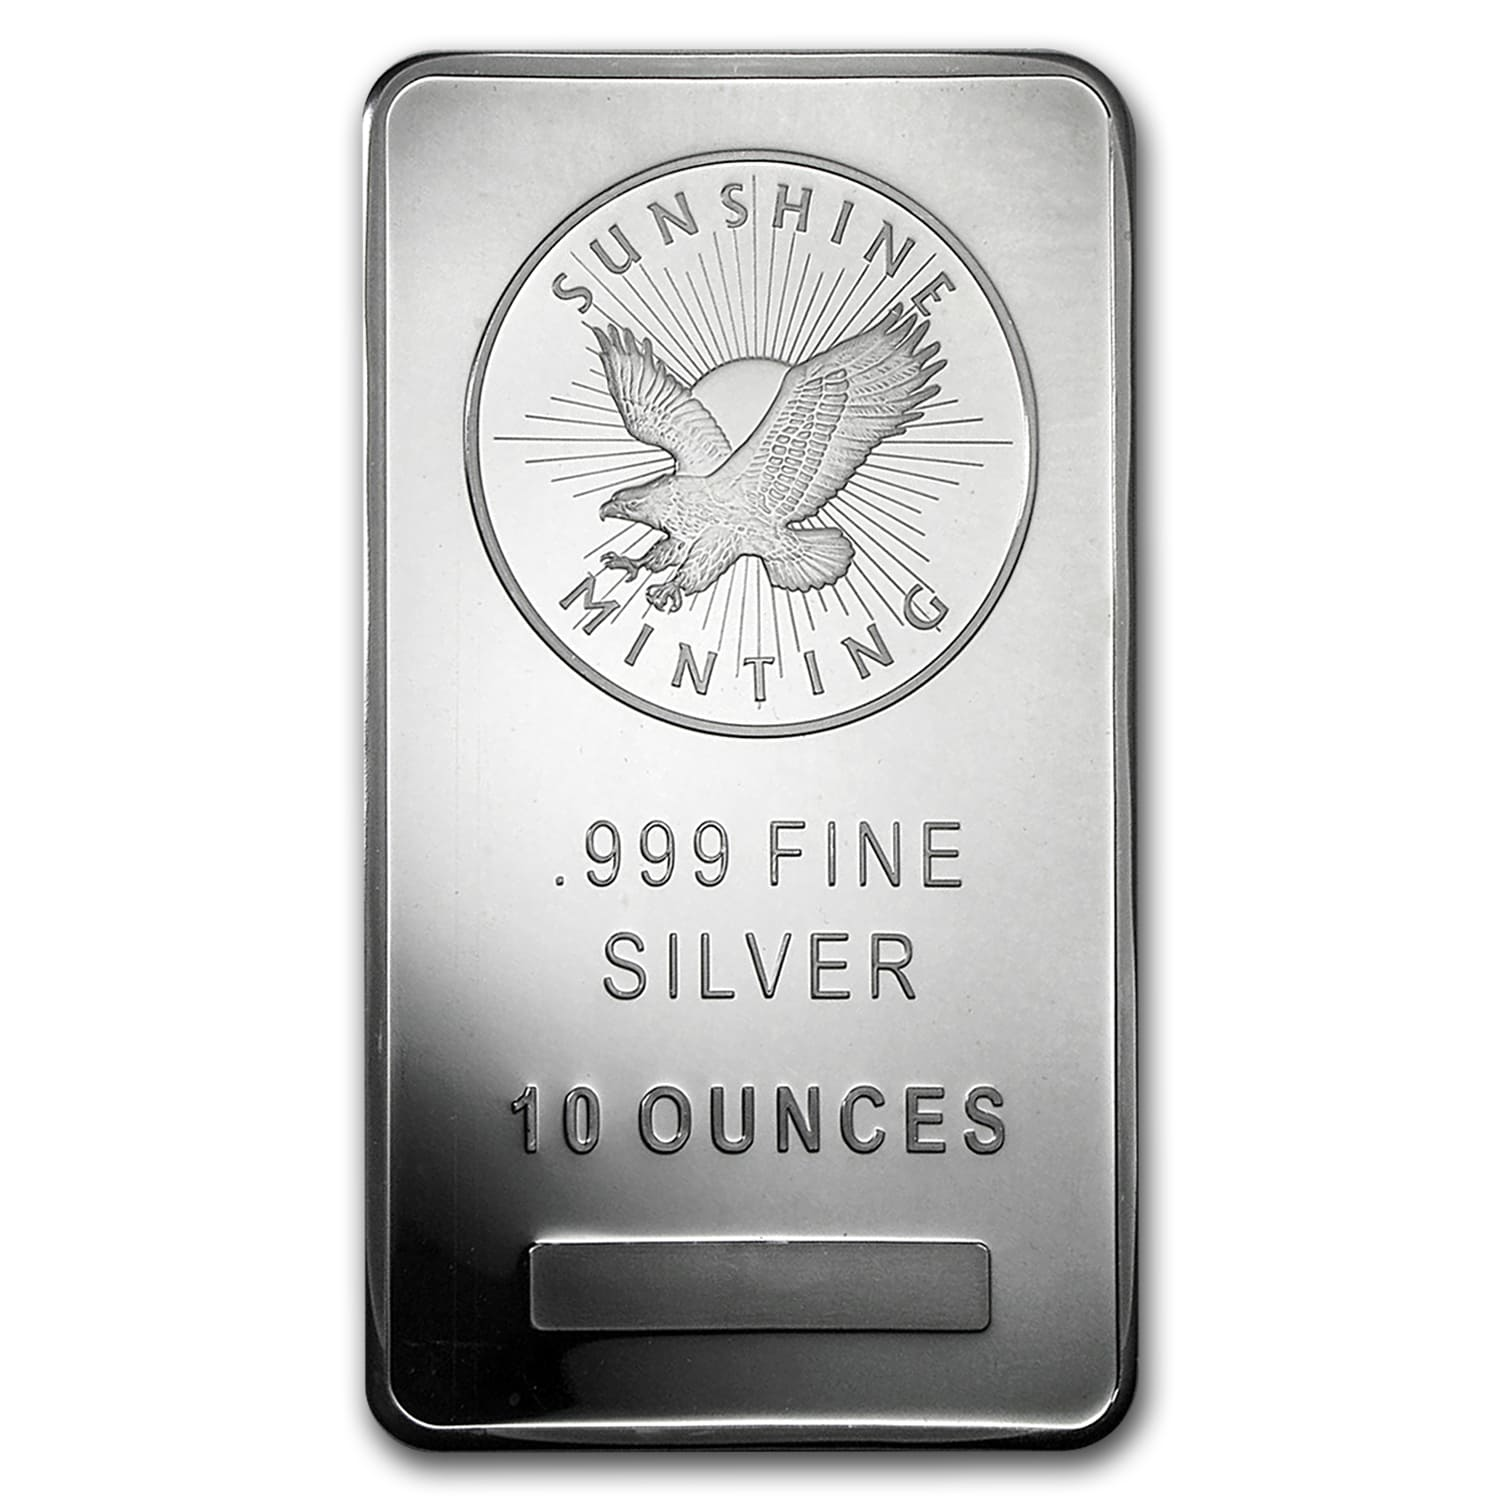 10 oz Silver Bar - Sunshine (V2)